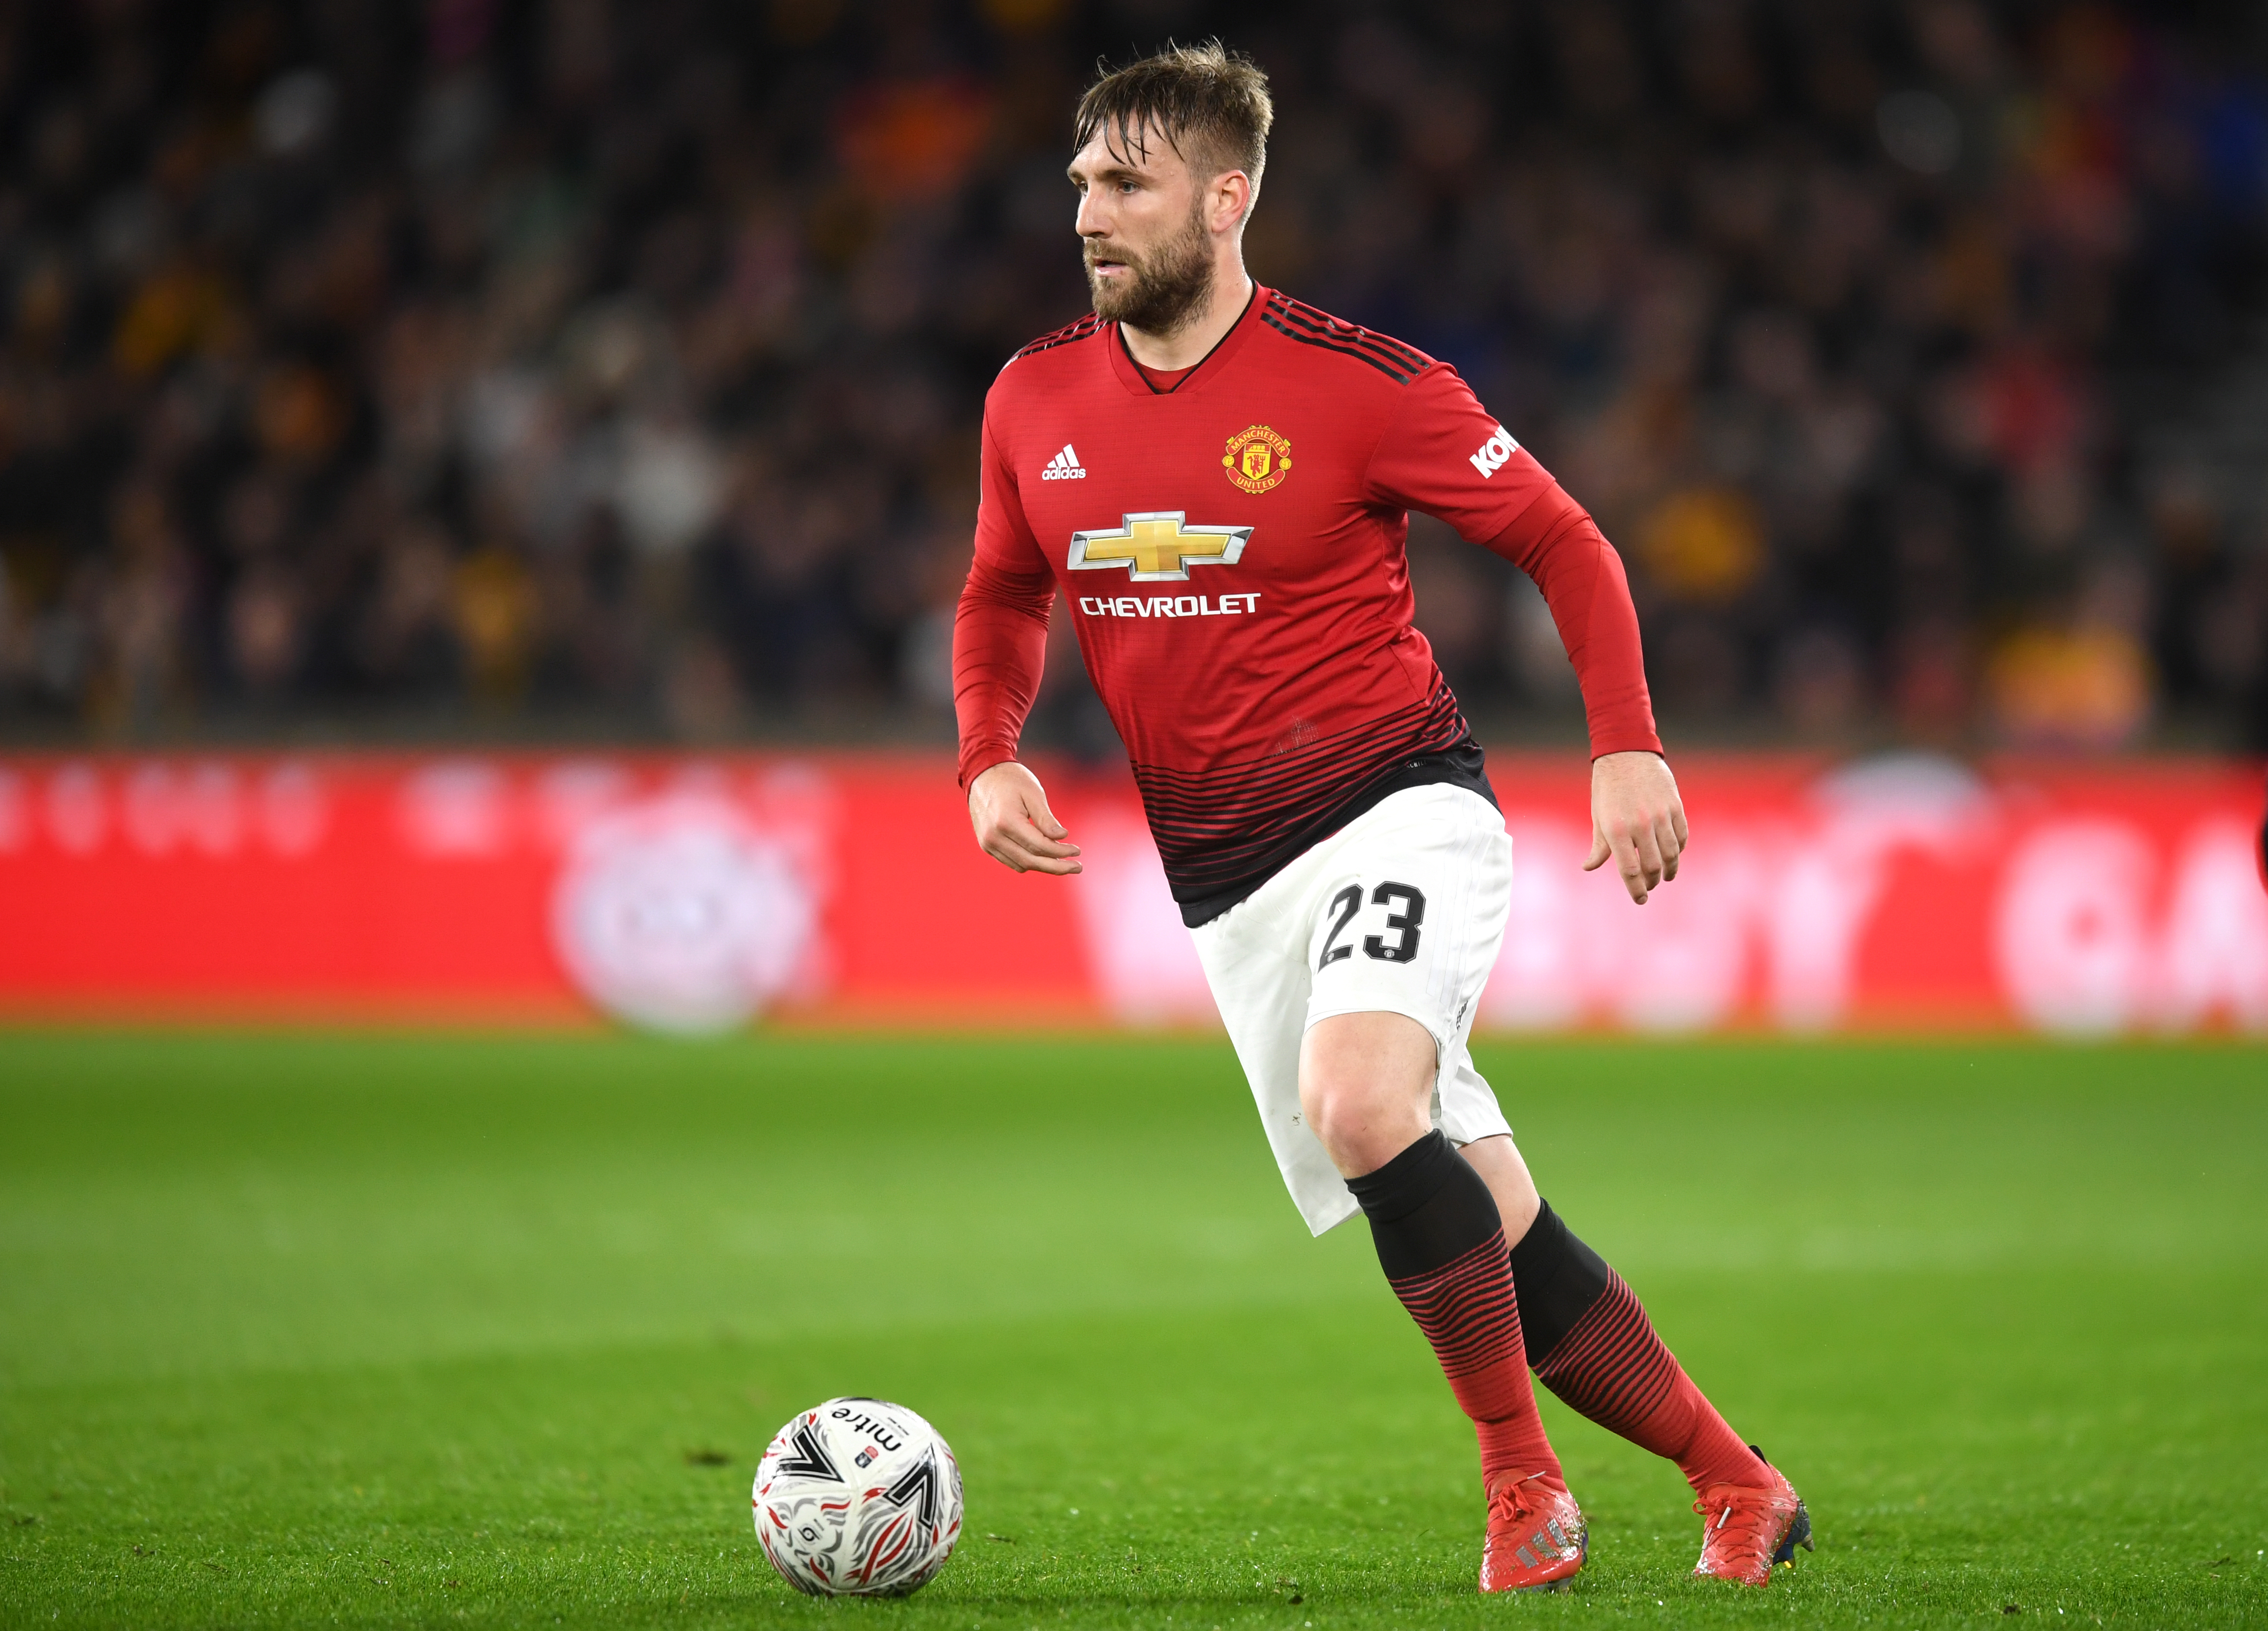 Luke Shaw withdraws from England squad with injury